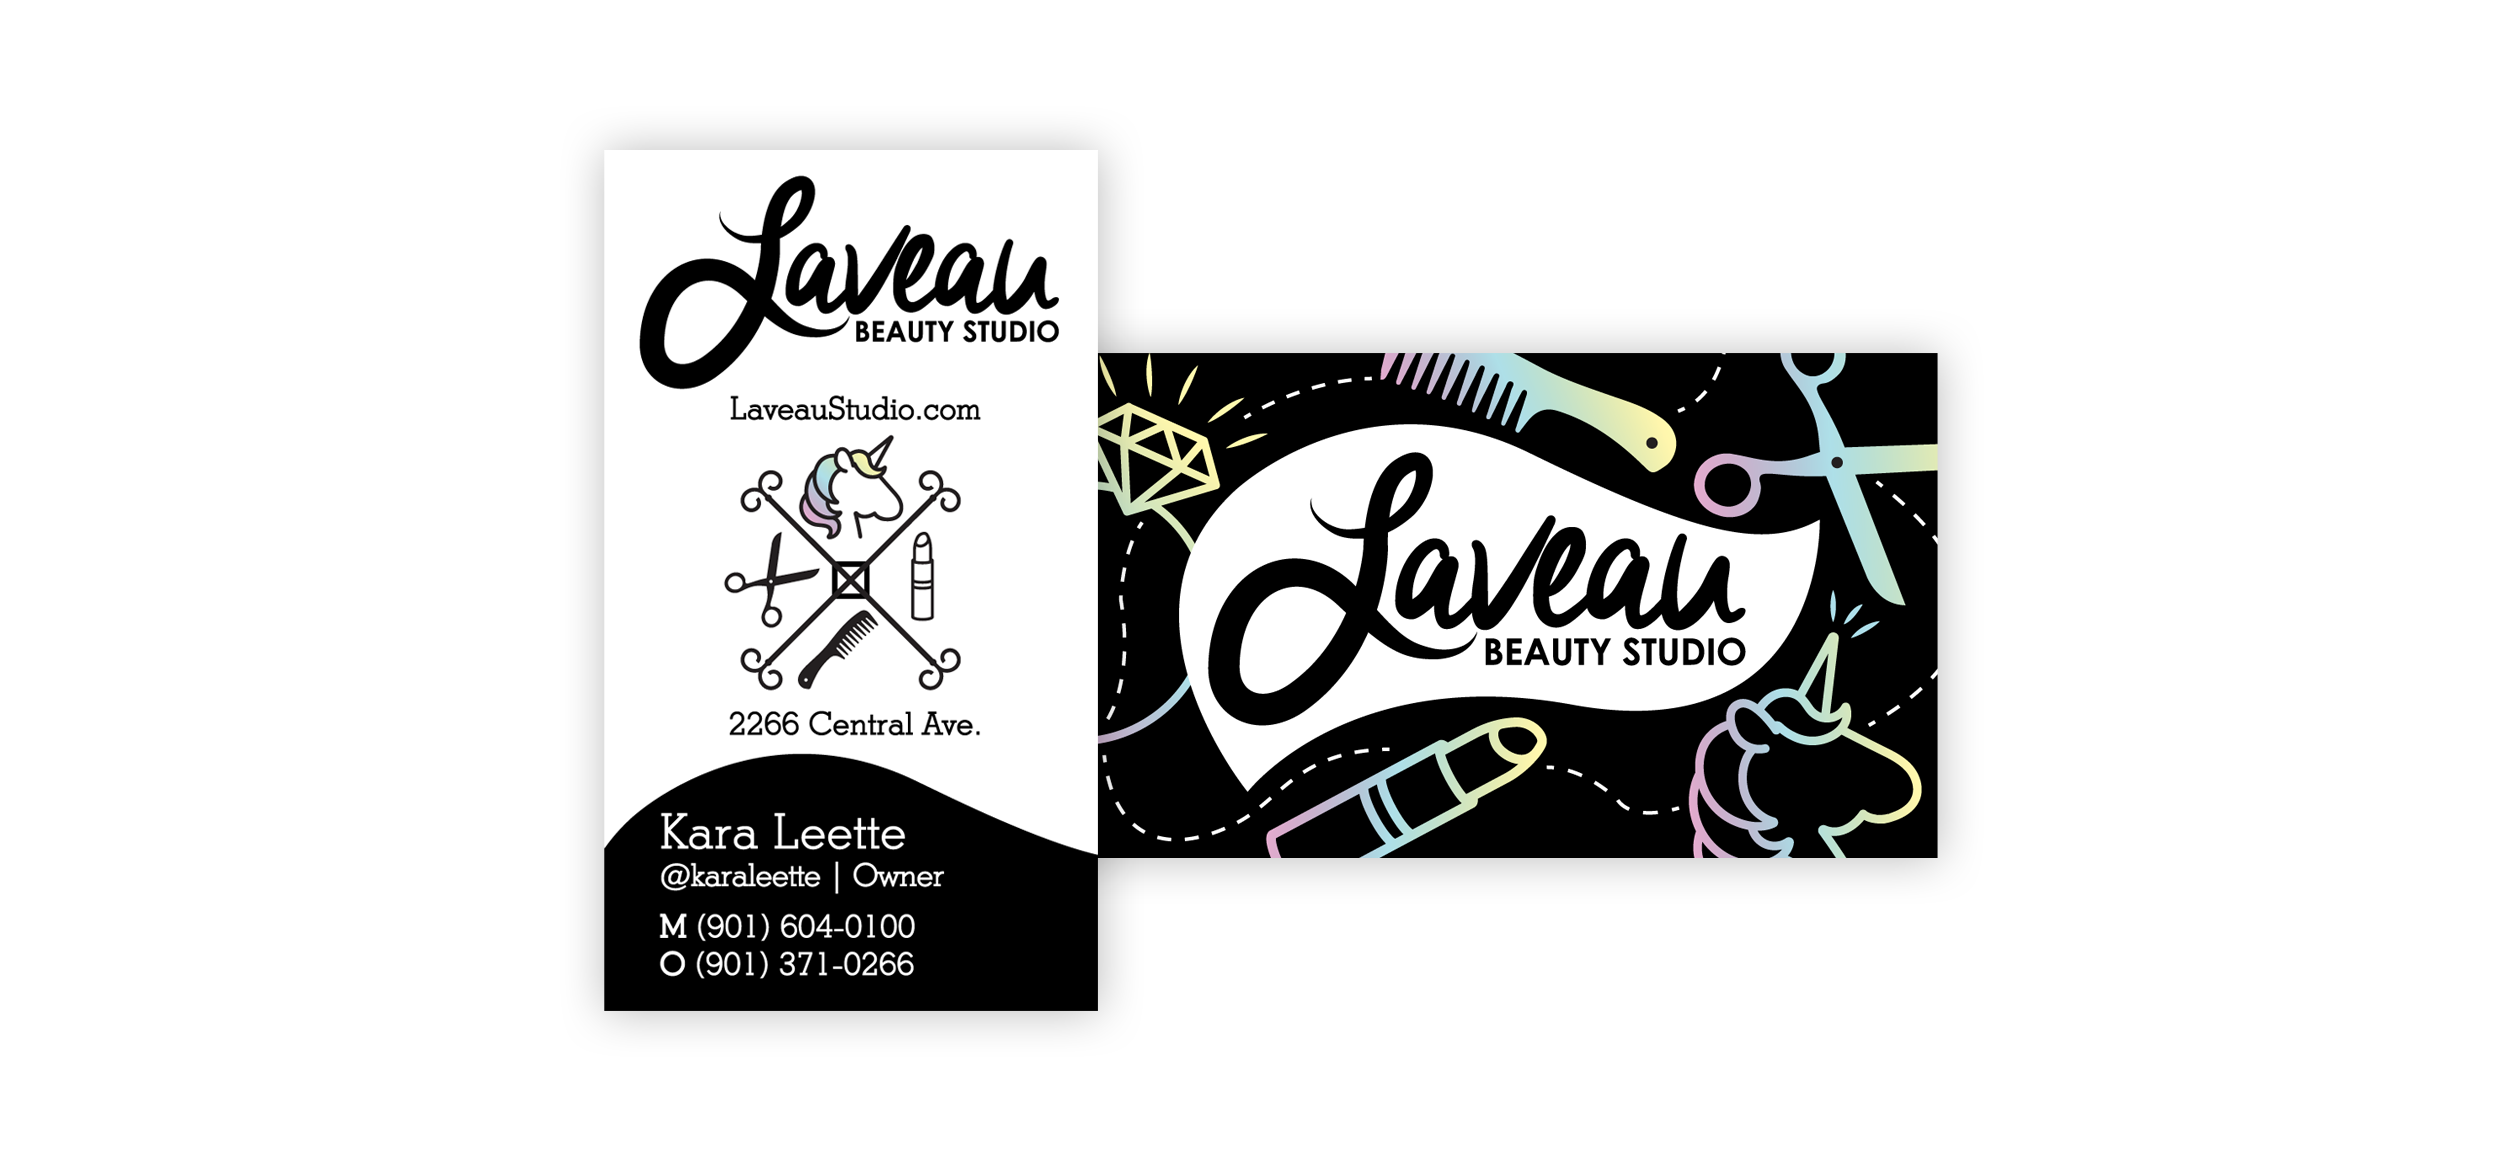 Laveau-Beauty-Studio_Business-Cards_Print-Design_Dreamcapture_Memphis-TN